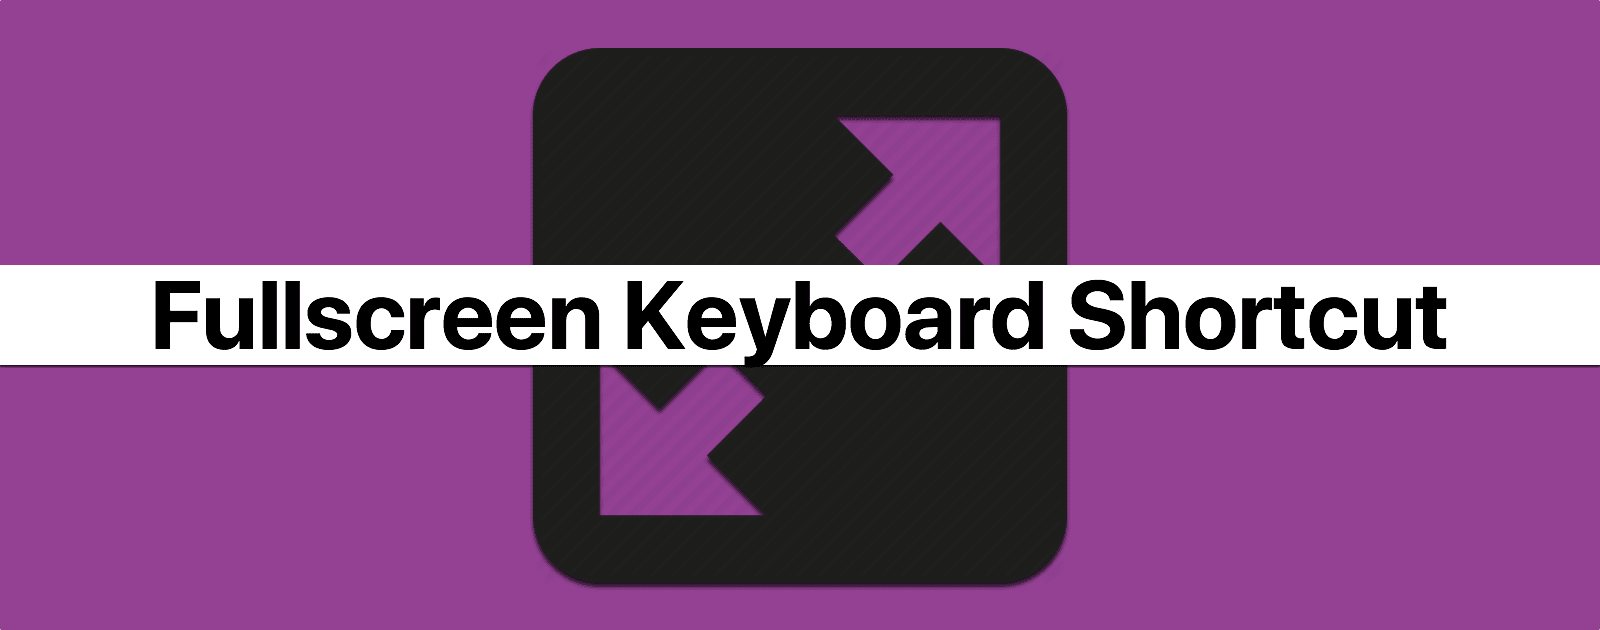 macOS: Entering Fullscreen Mode With a Keyboard Shortcut - The Mac